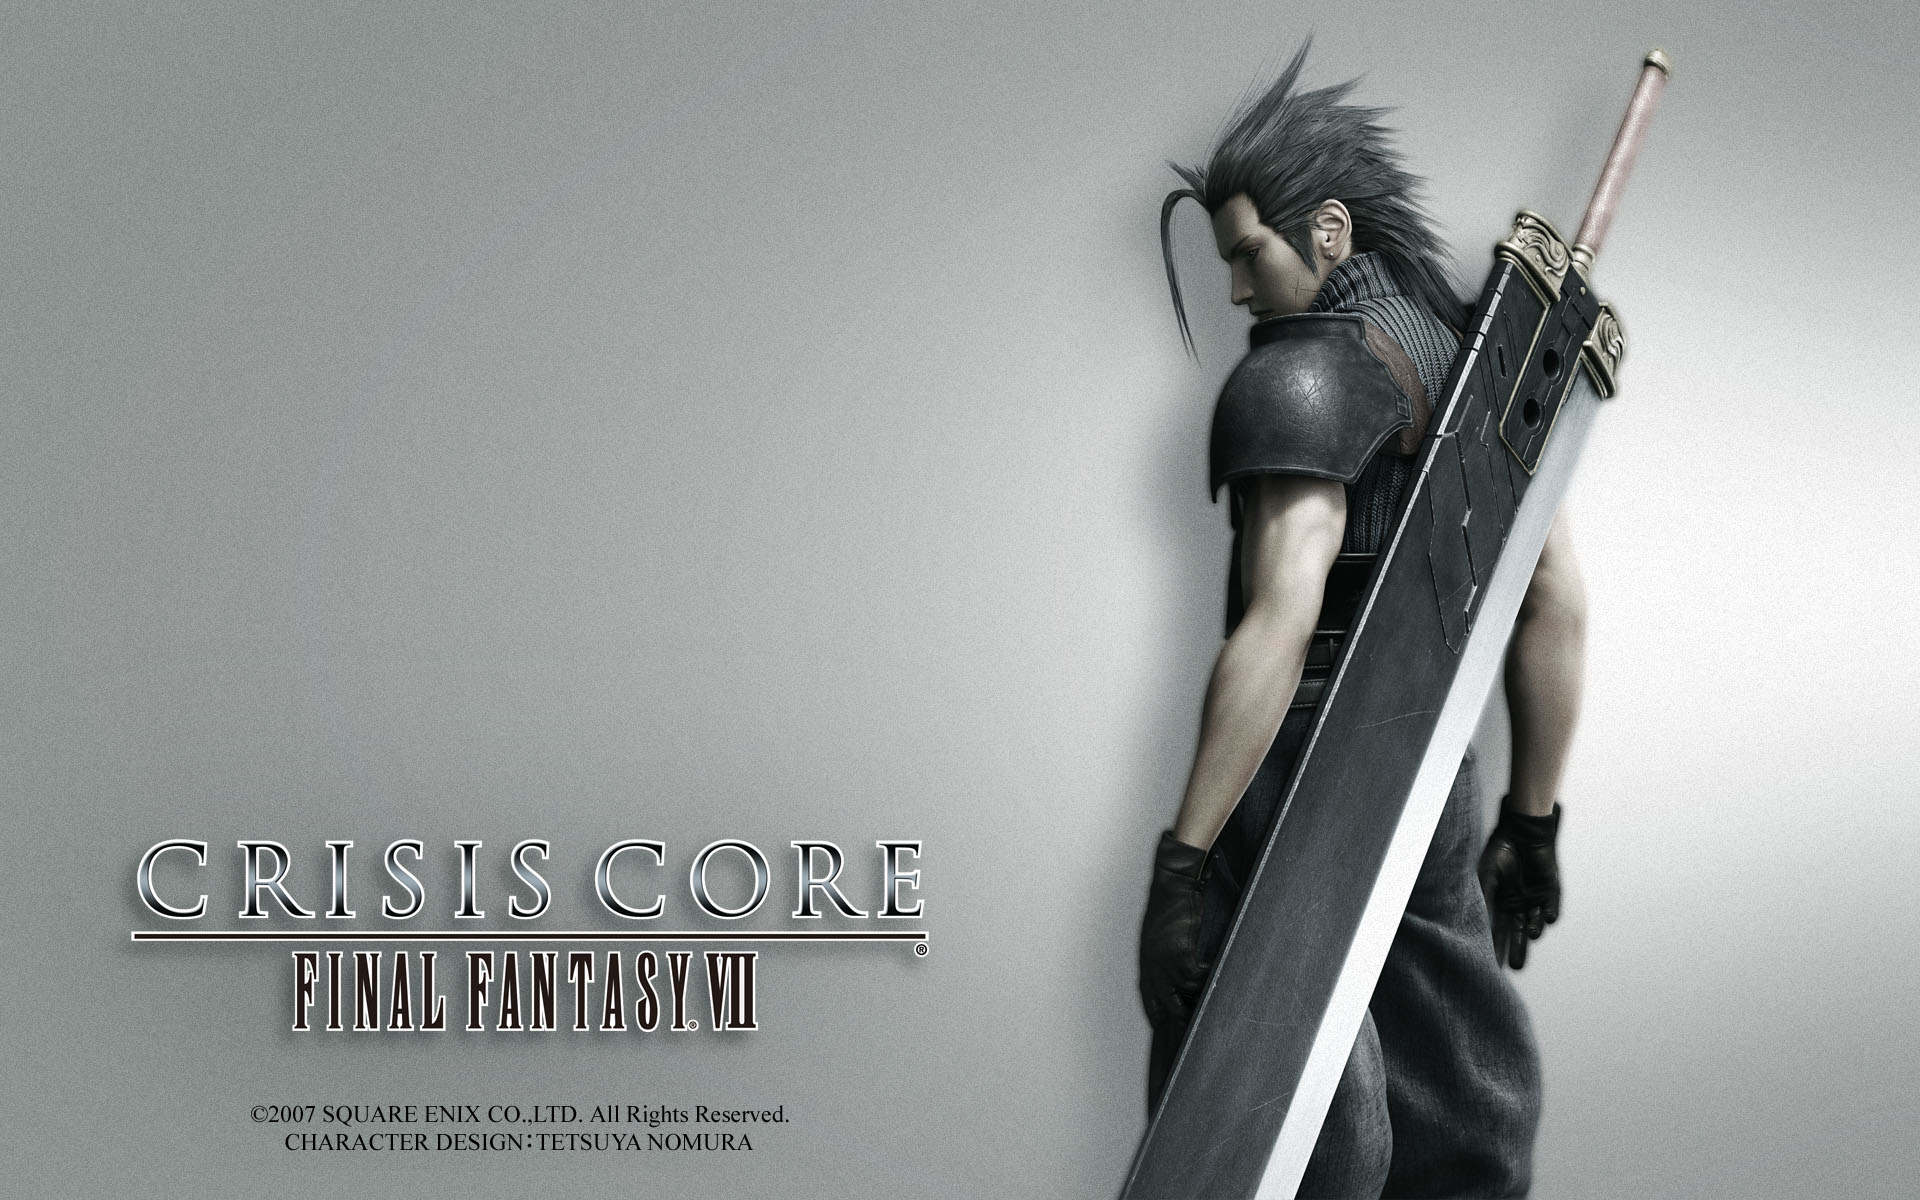 Final Fantasy 7 Wallpaper HD Game Desktop Wallpapers 1920x1200 1920x1200